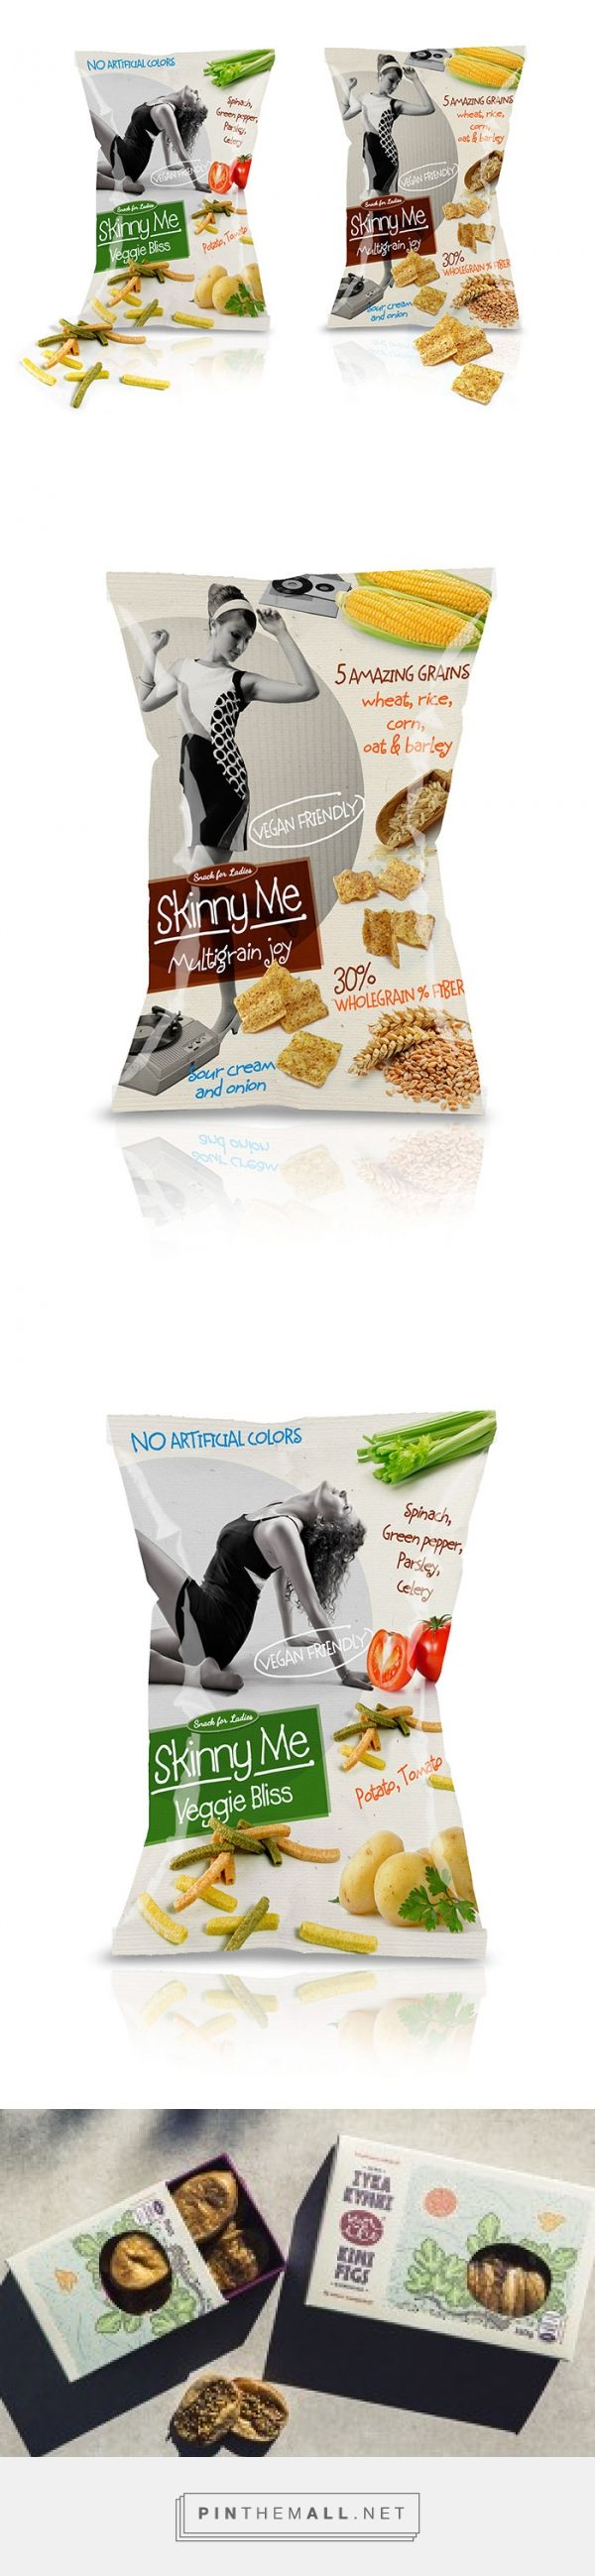 Skinny Me via Package Design Inspiration by Radostin Hristov, Bulgaria curated by Packaging Diva PD. Enticing chips packaging design.